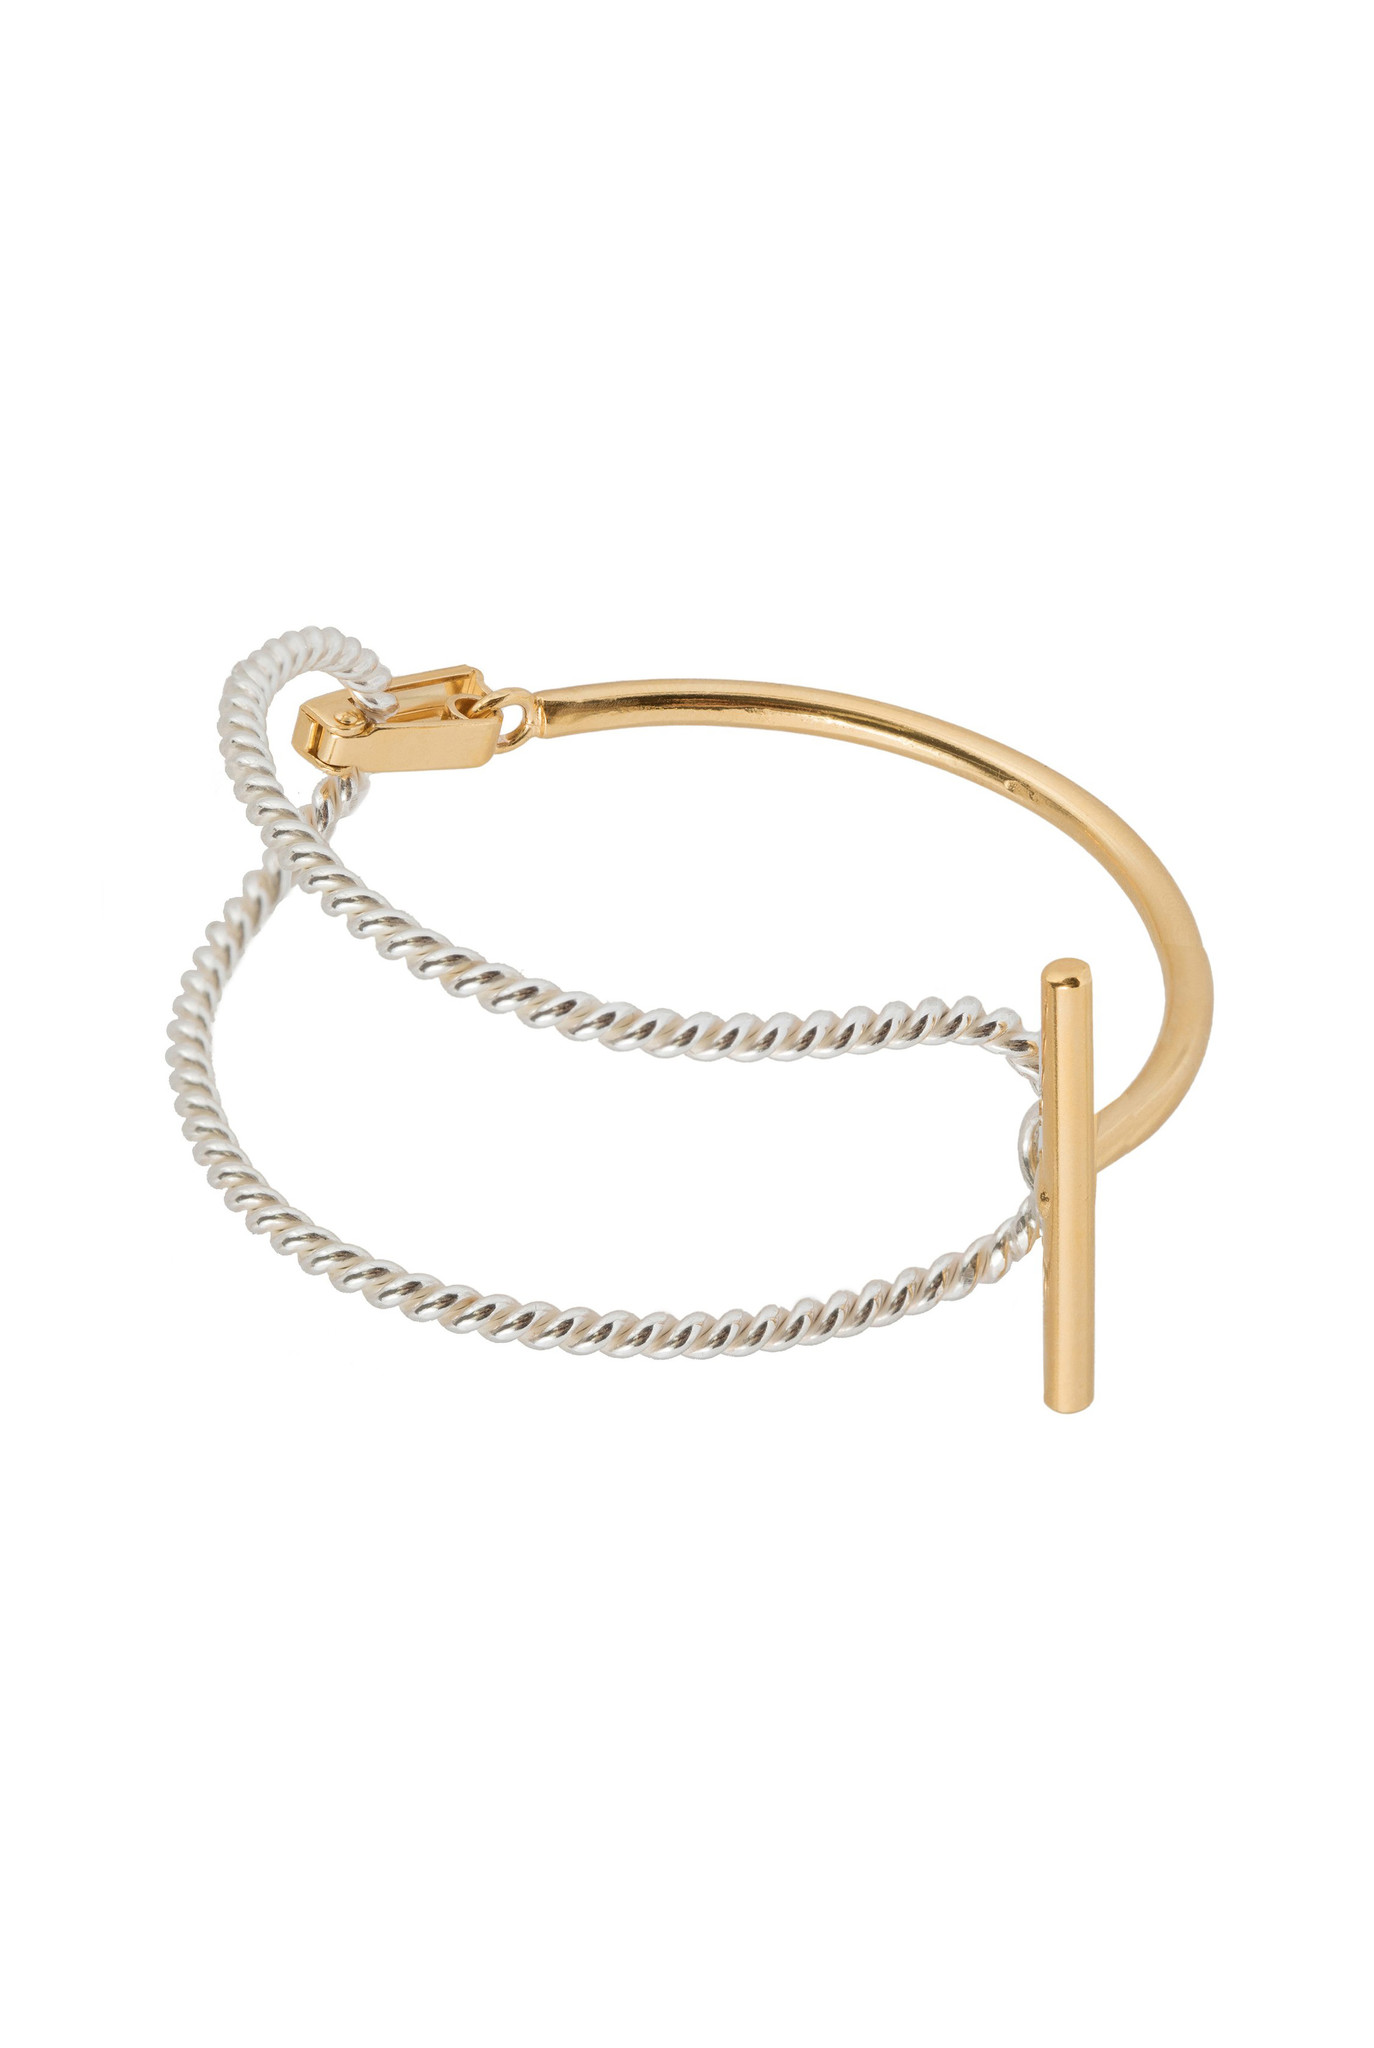 Statement bracelet with t-clasp